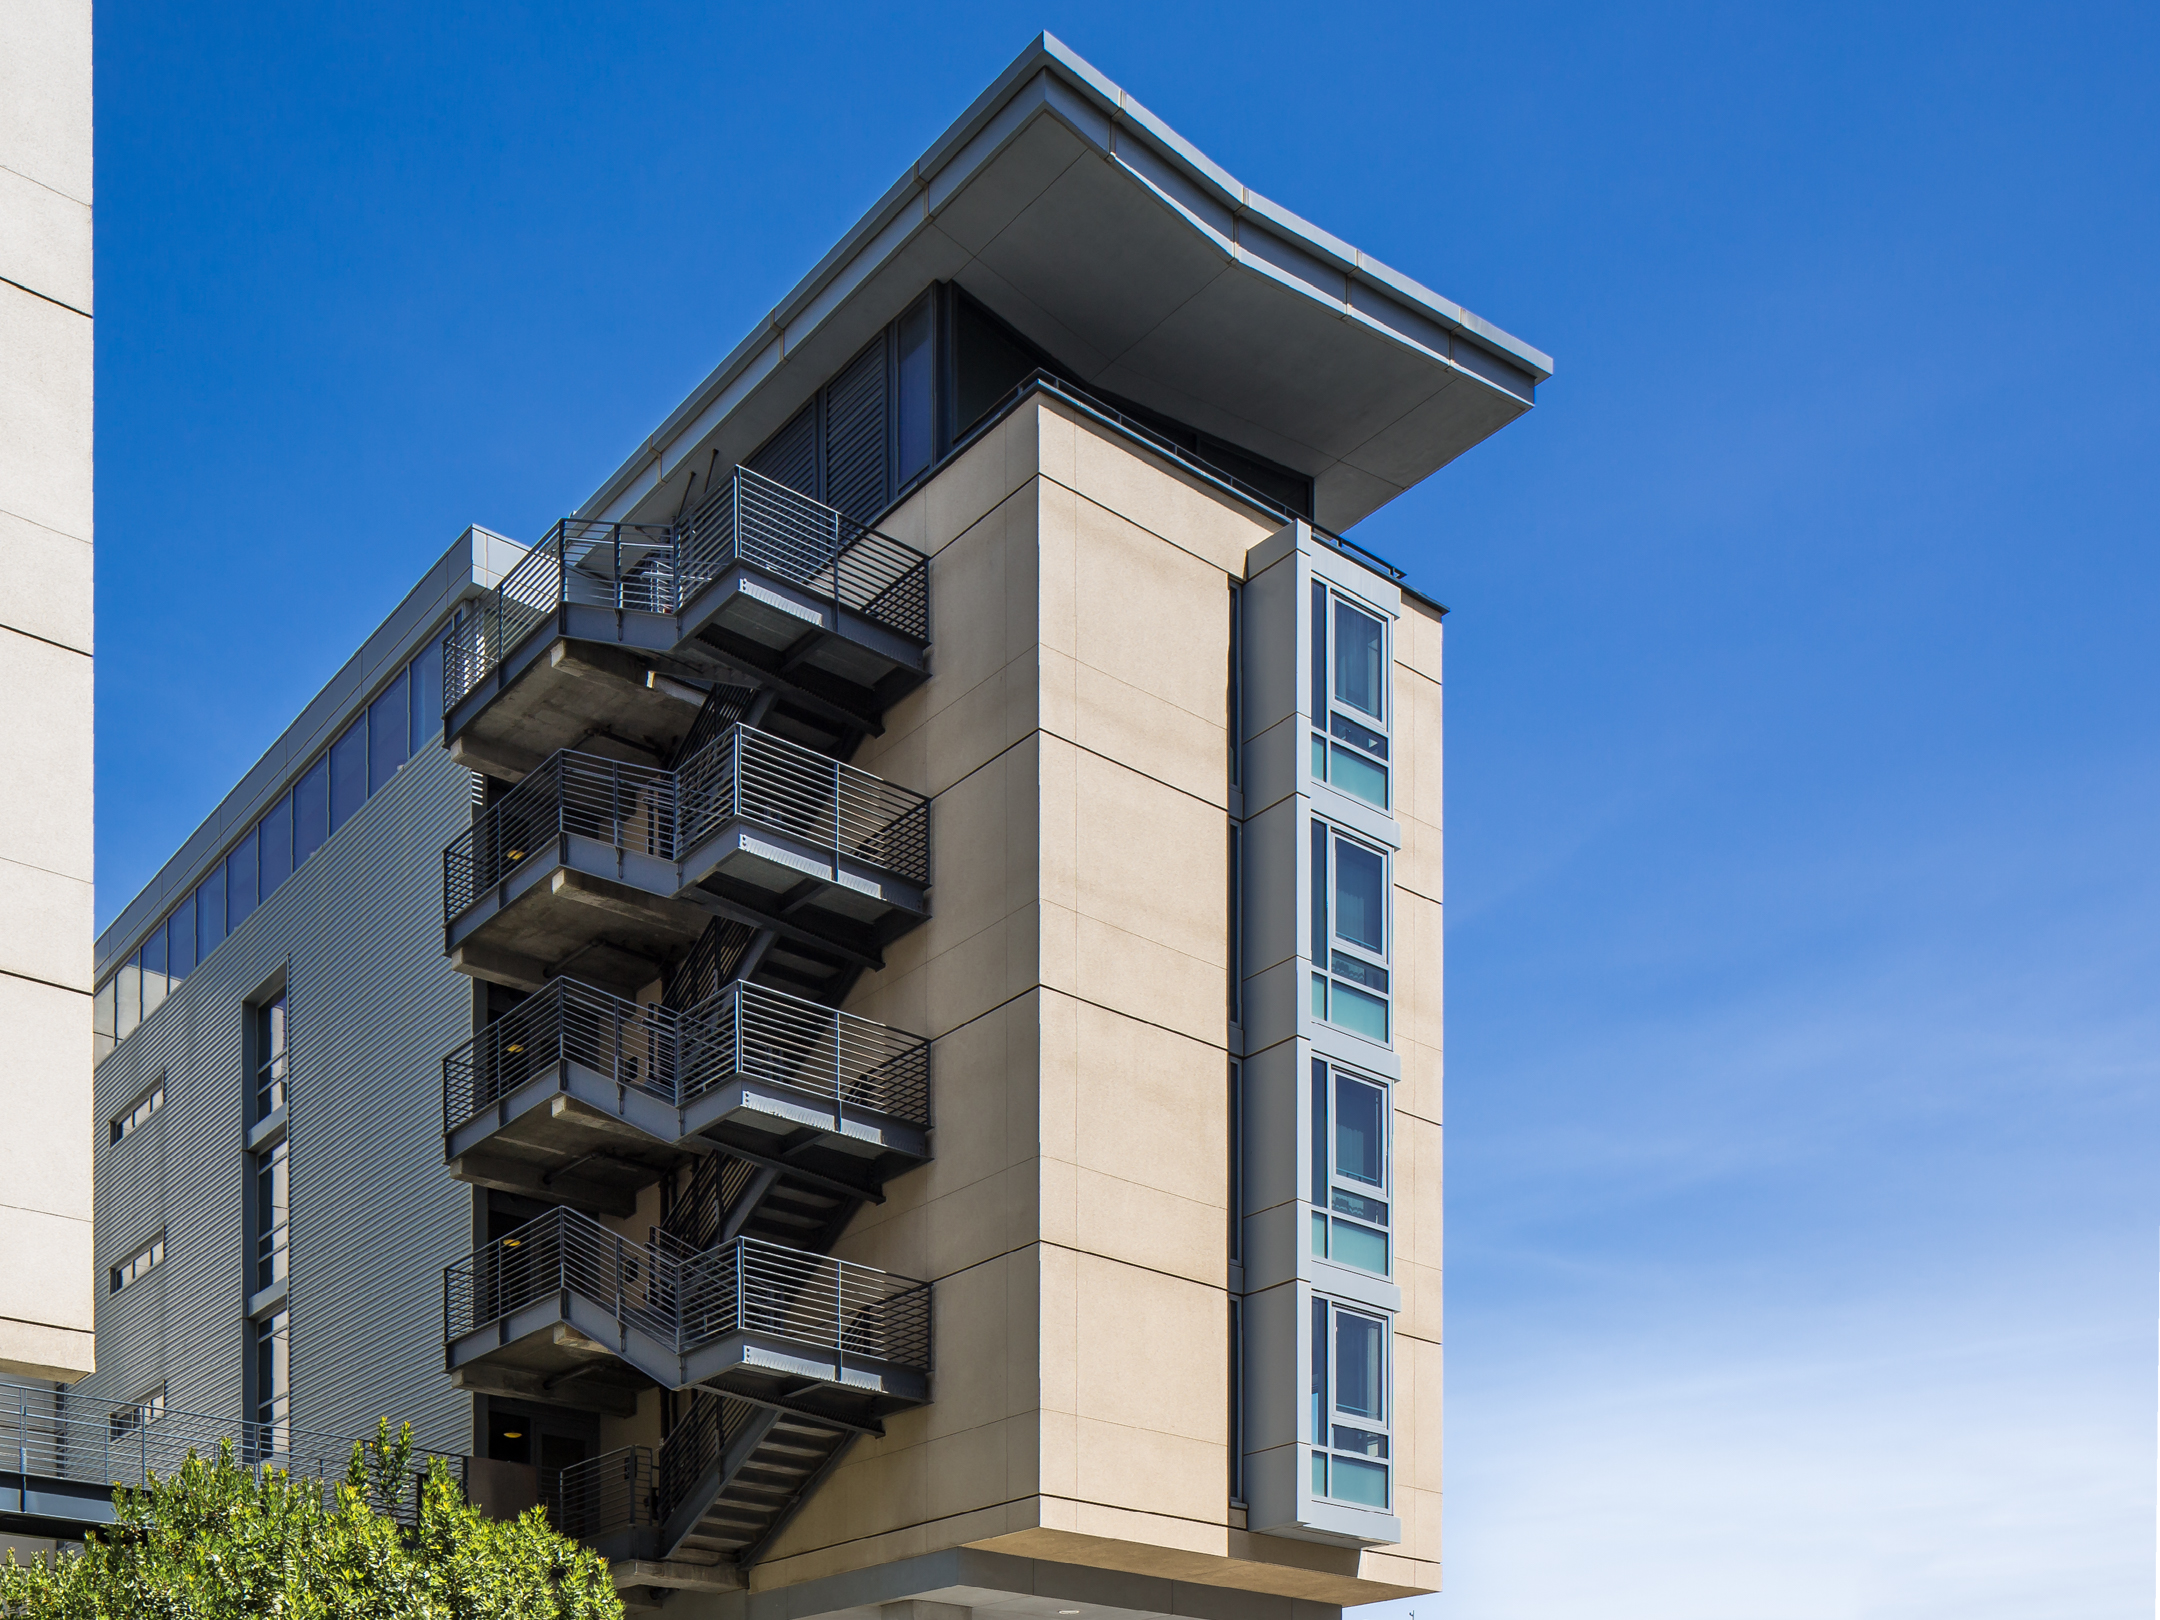 UCSF Housing Services Mission Bay